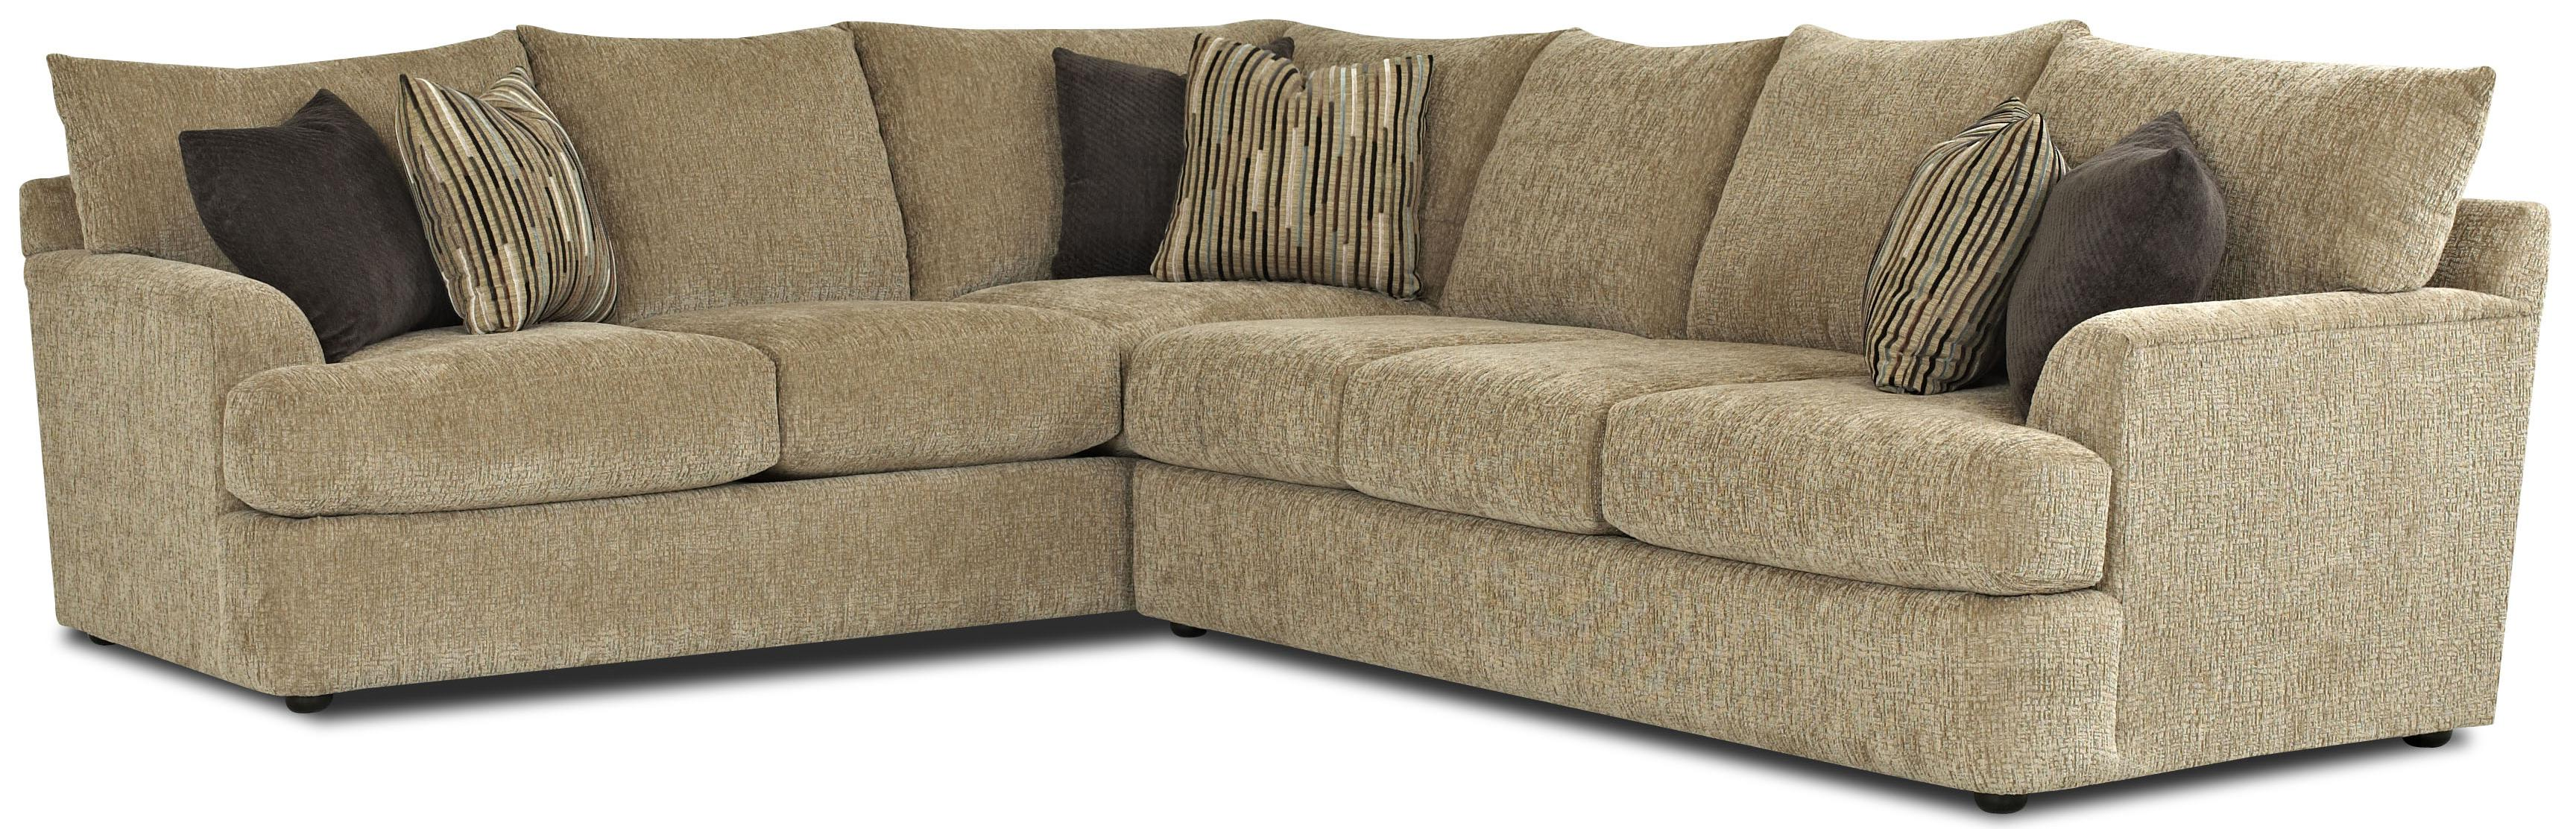 Contemporary L-Shaped Sectional Sofa : l shaped sectional sleeper sofa - Sectionals, Sofas & Couches